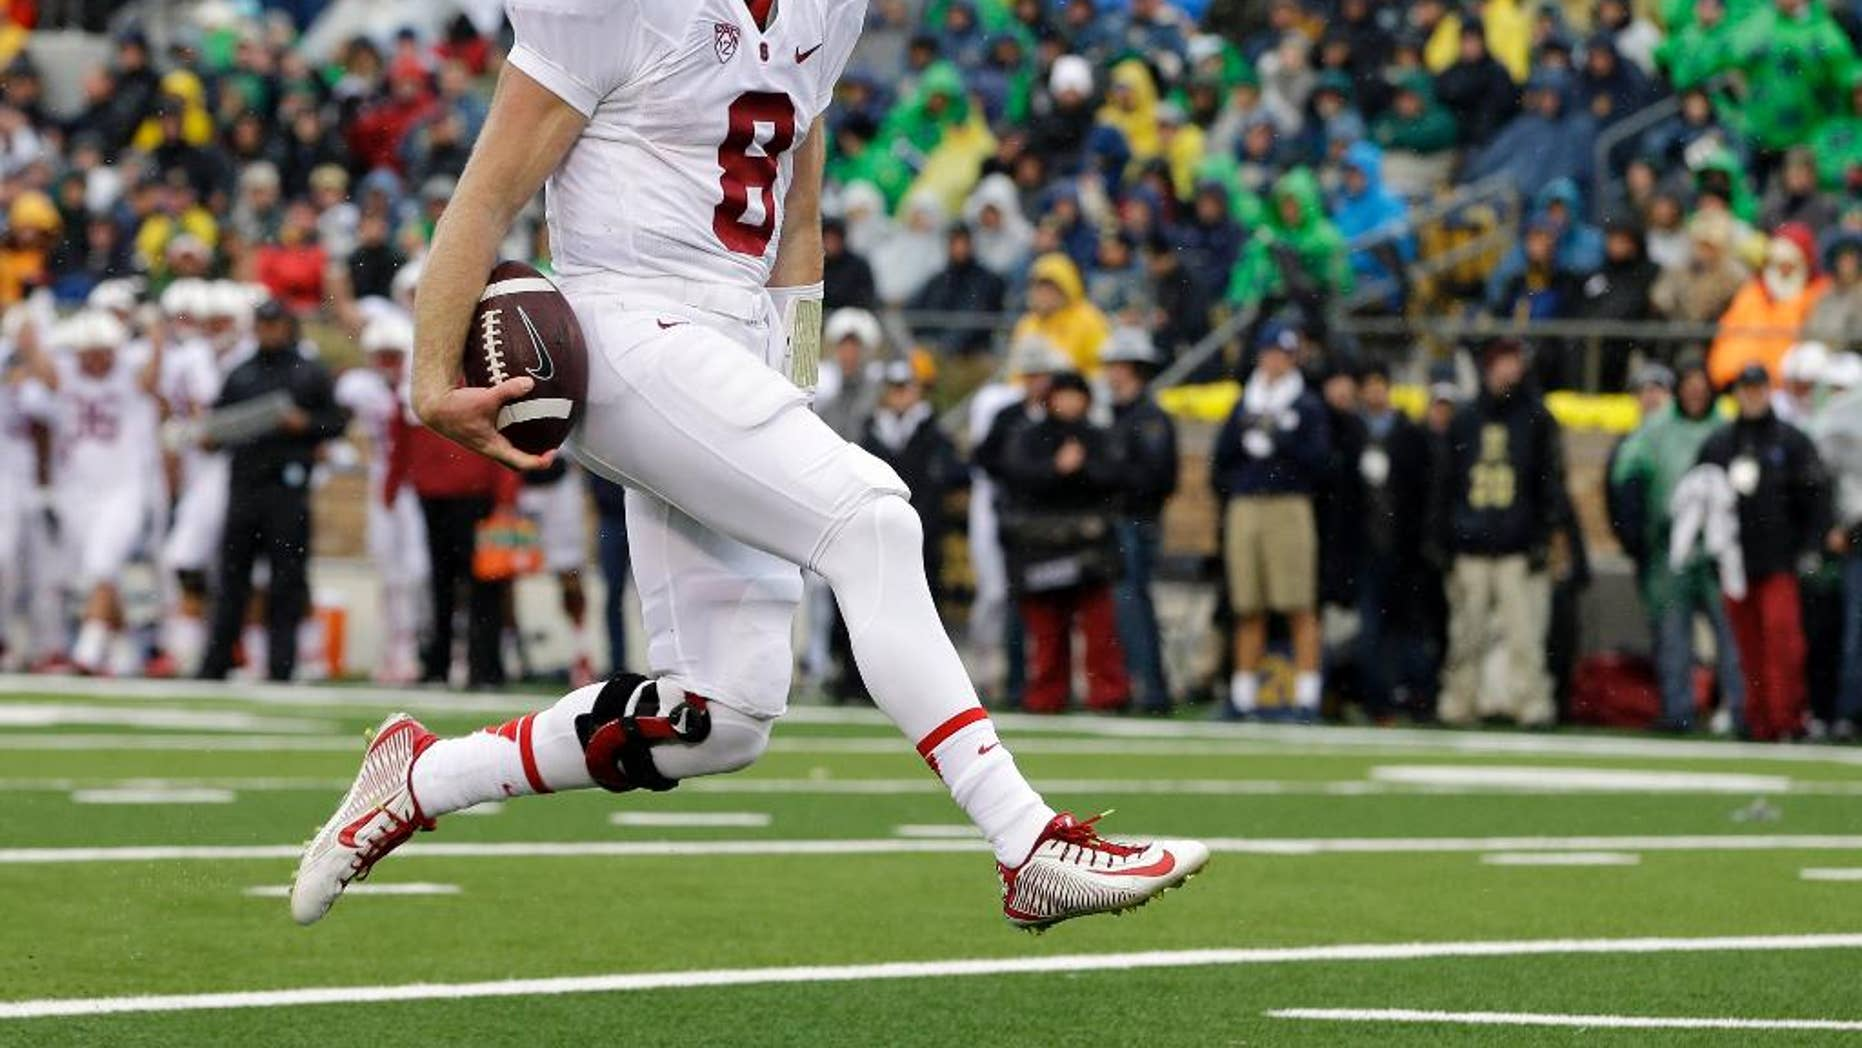 Stanford quarterback Kevin Hogan (8) reacts after scoring on a 10-yard touchdown run during the first half of an NCAA college football game against Notre Dame, Saturday, Oct. 4, 2014, in South Bend, Ind. (AP Photo/Darron Cummings)